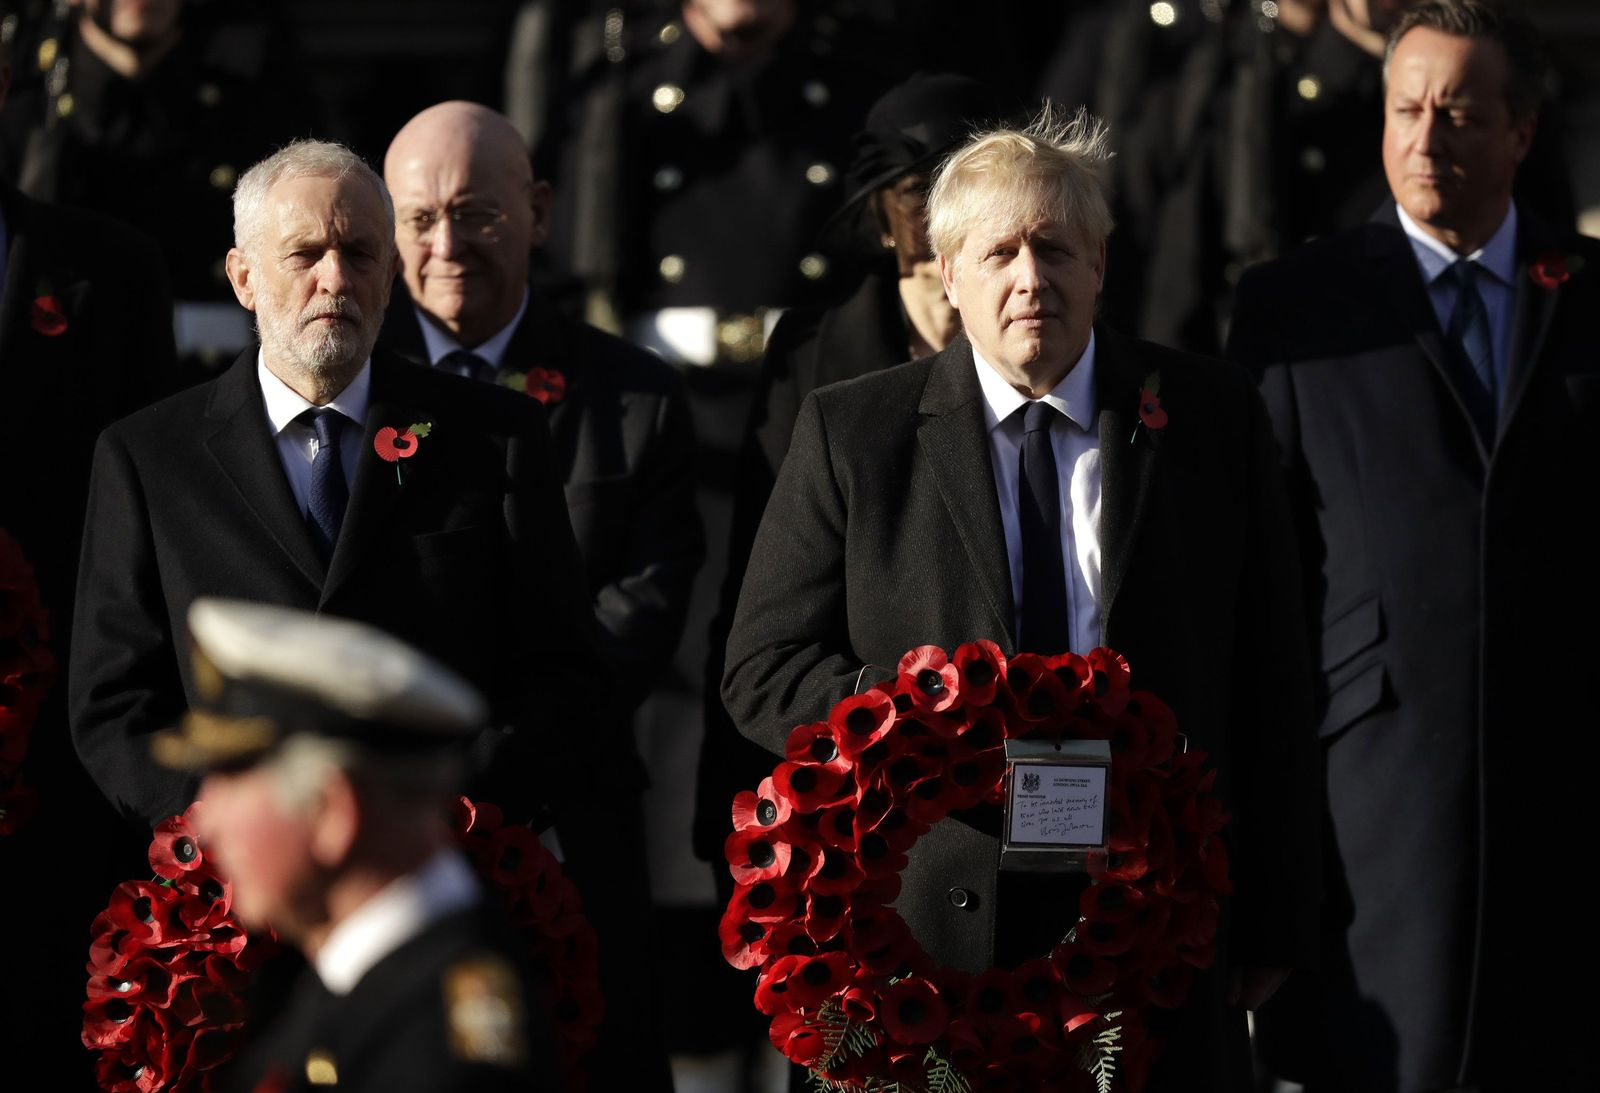 Britain Remembrance Sunday - Lage